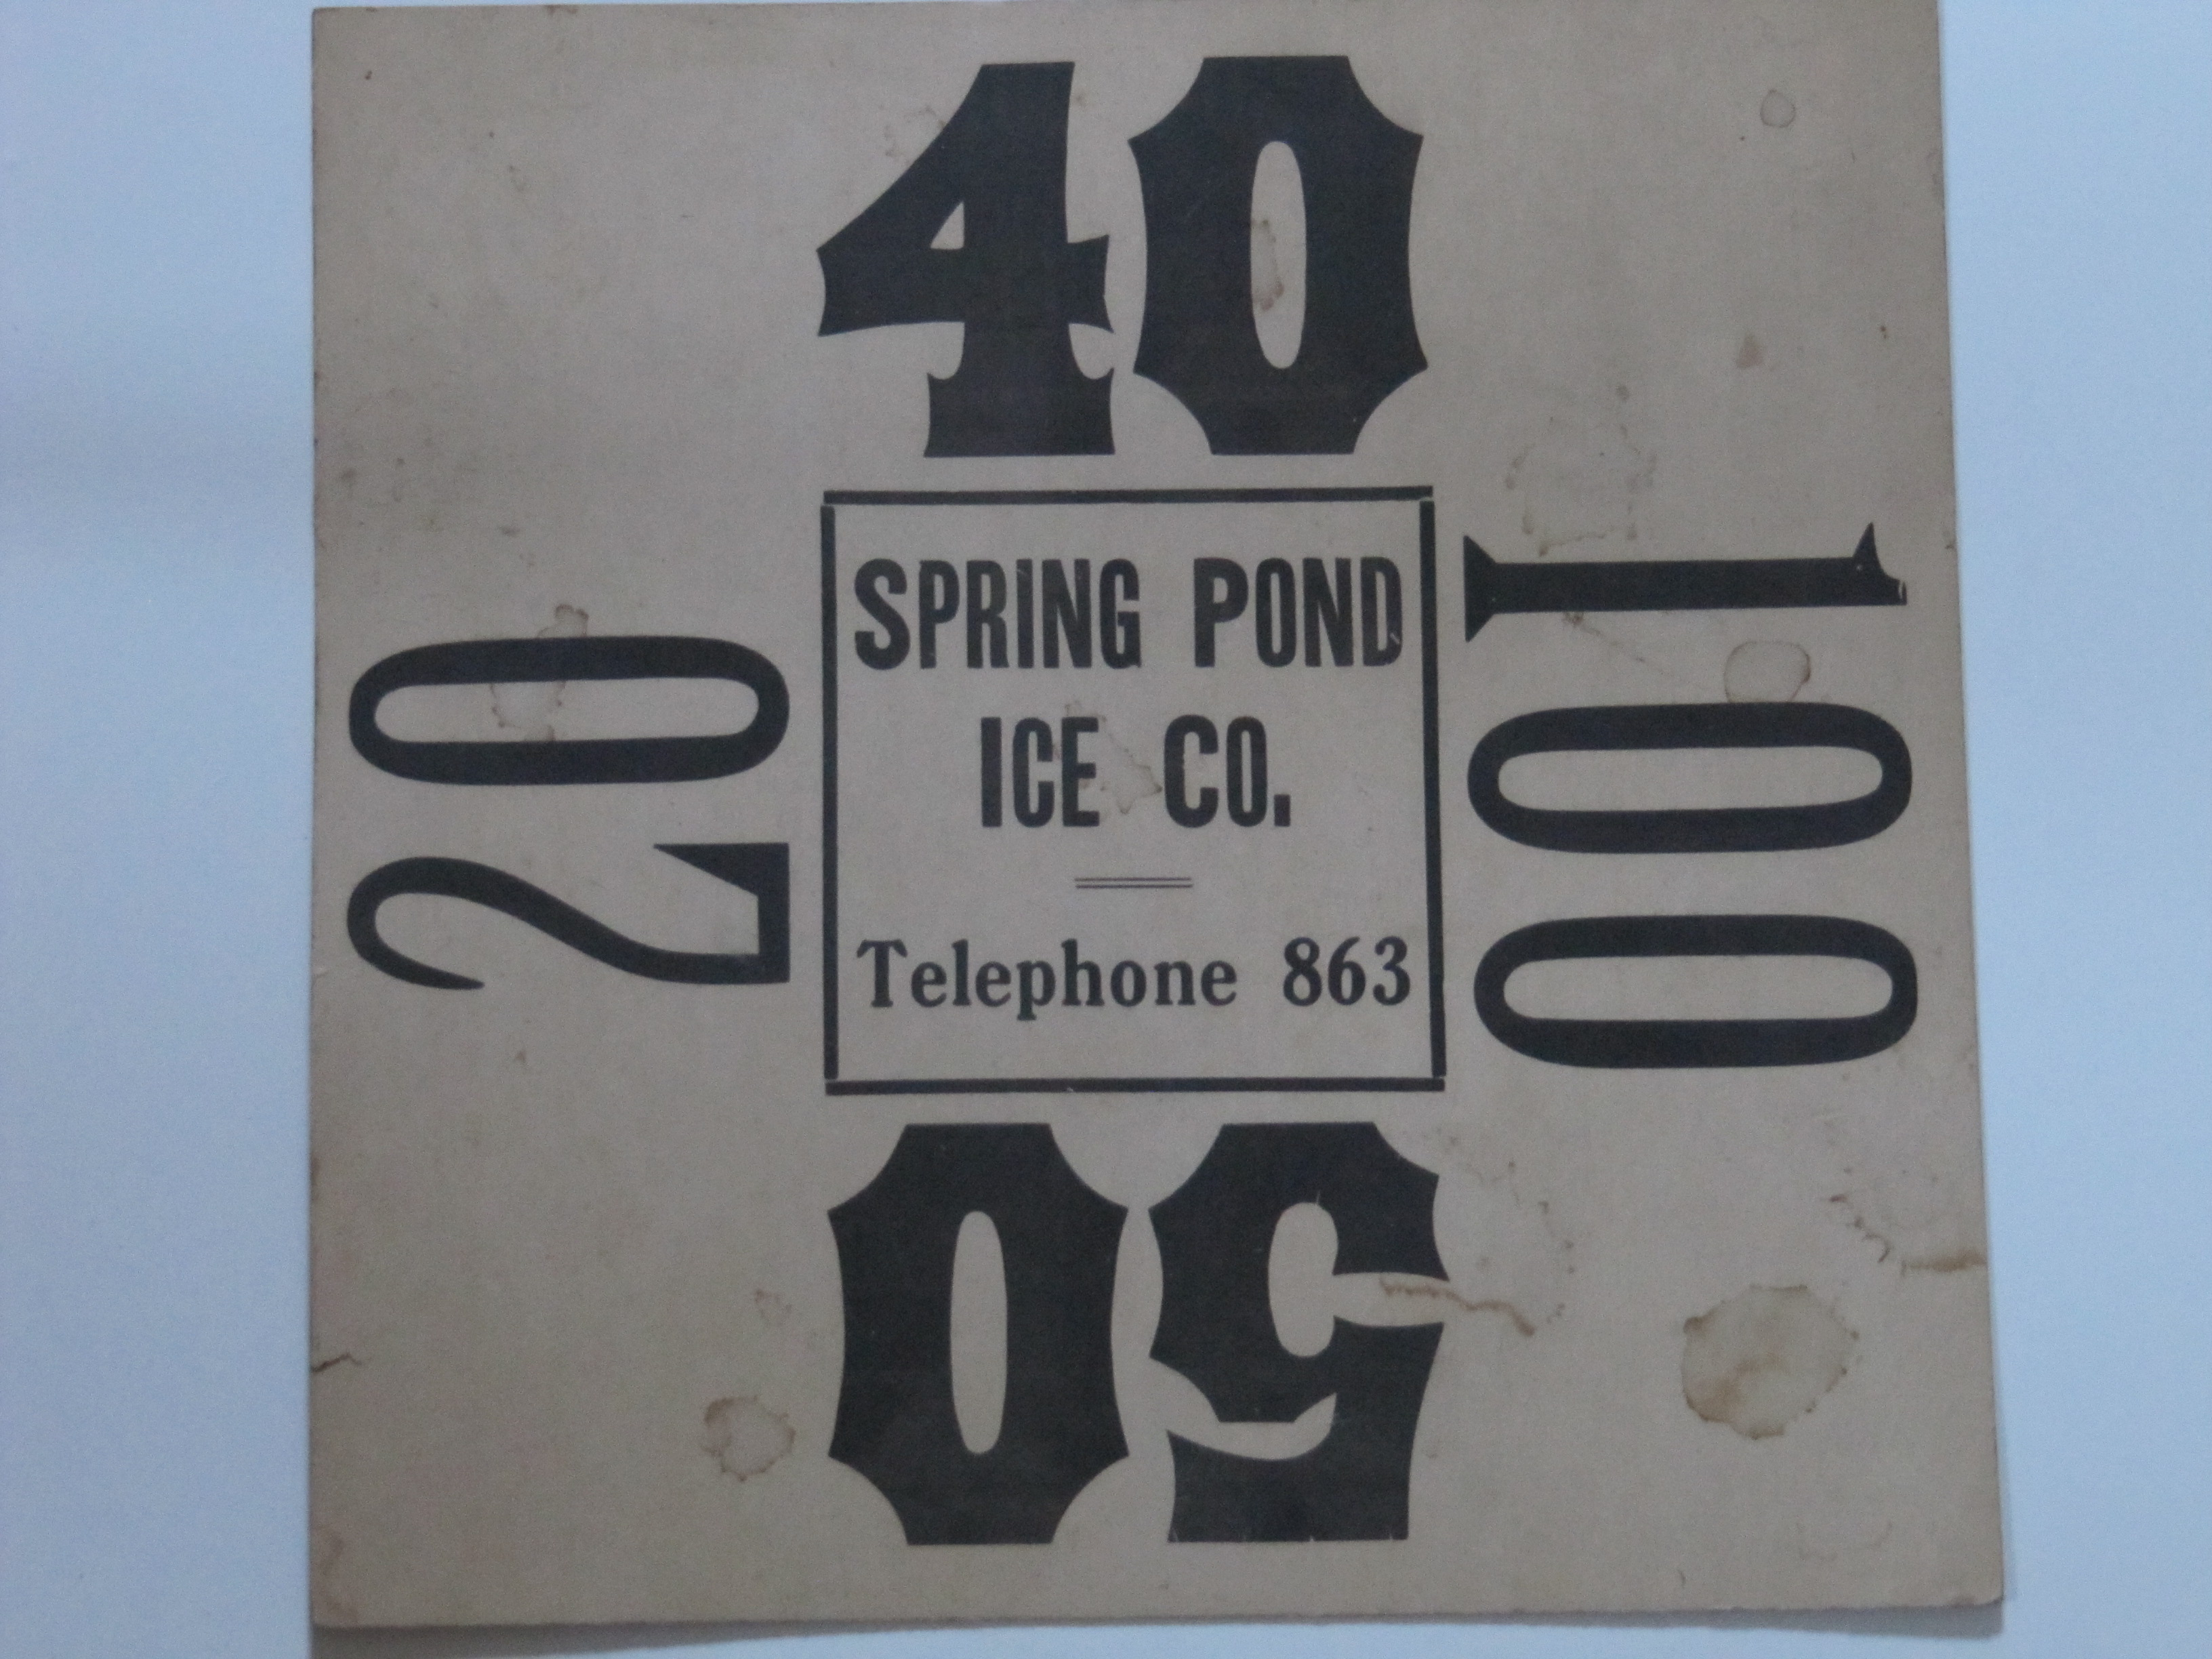 Spring Pond Ice Co.